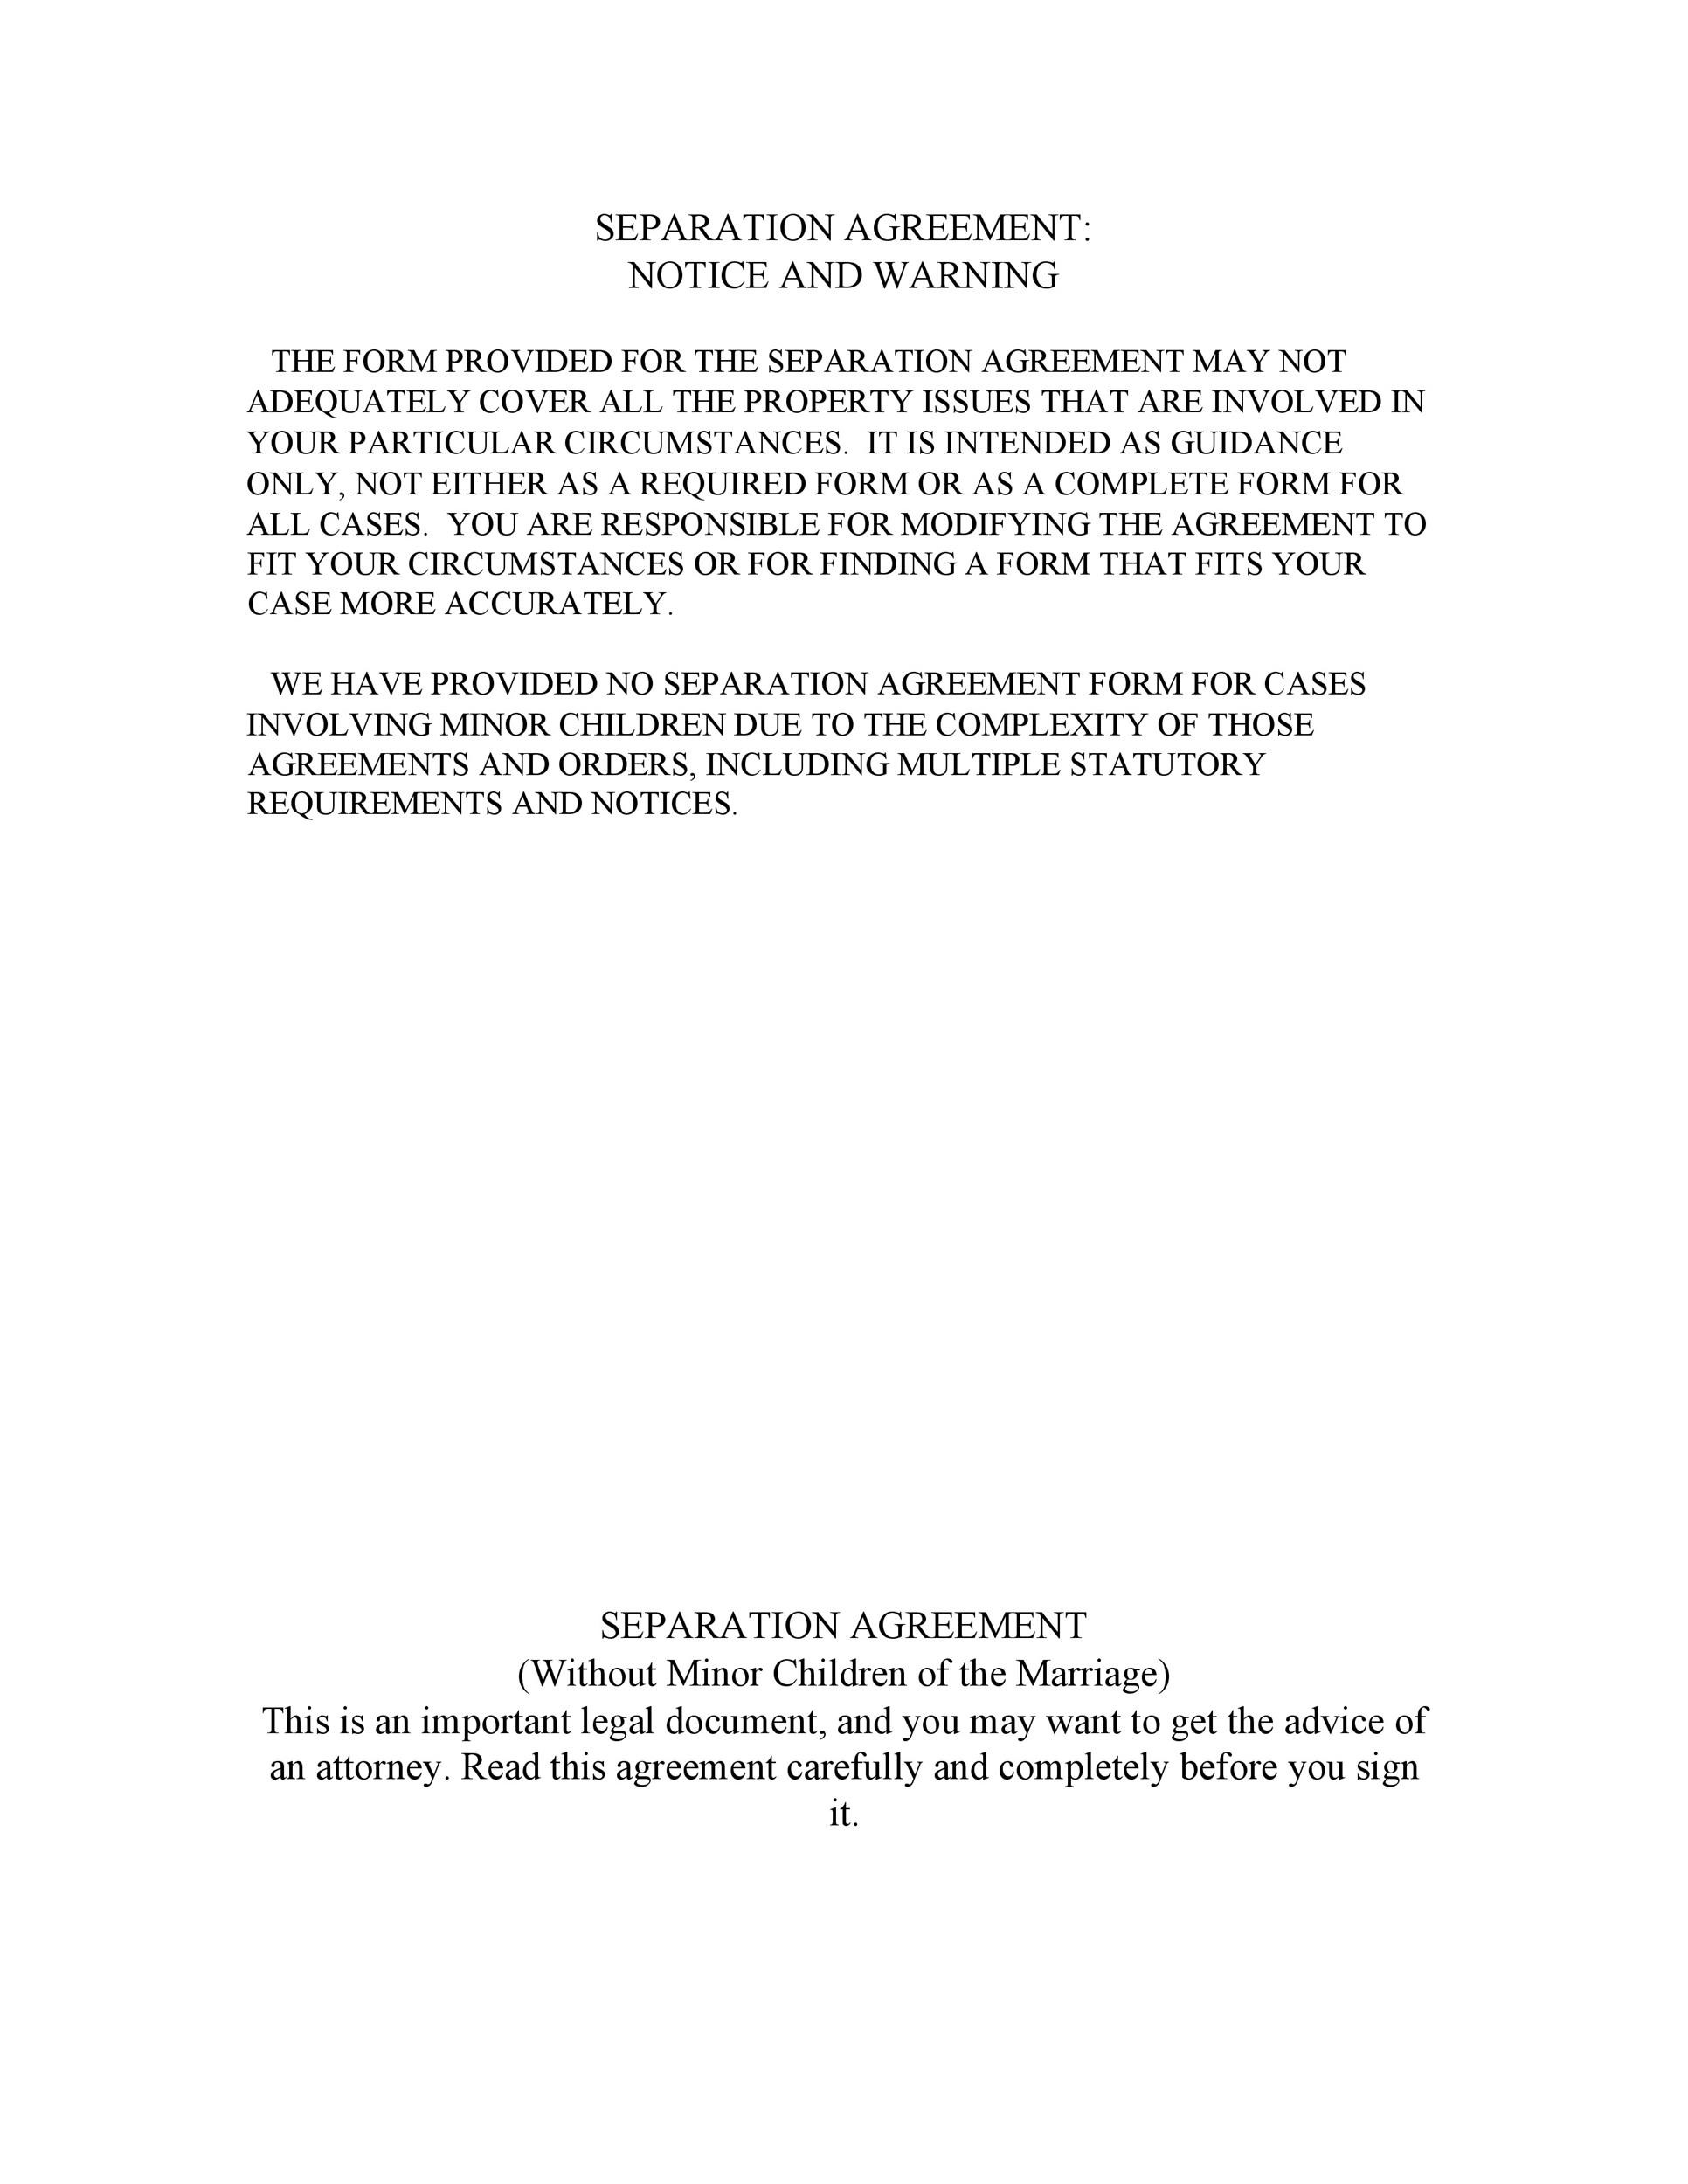 Free Separation Agreement Template 28